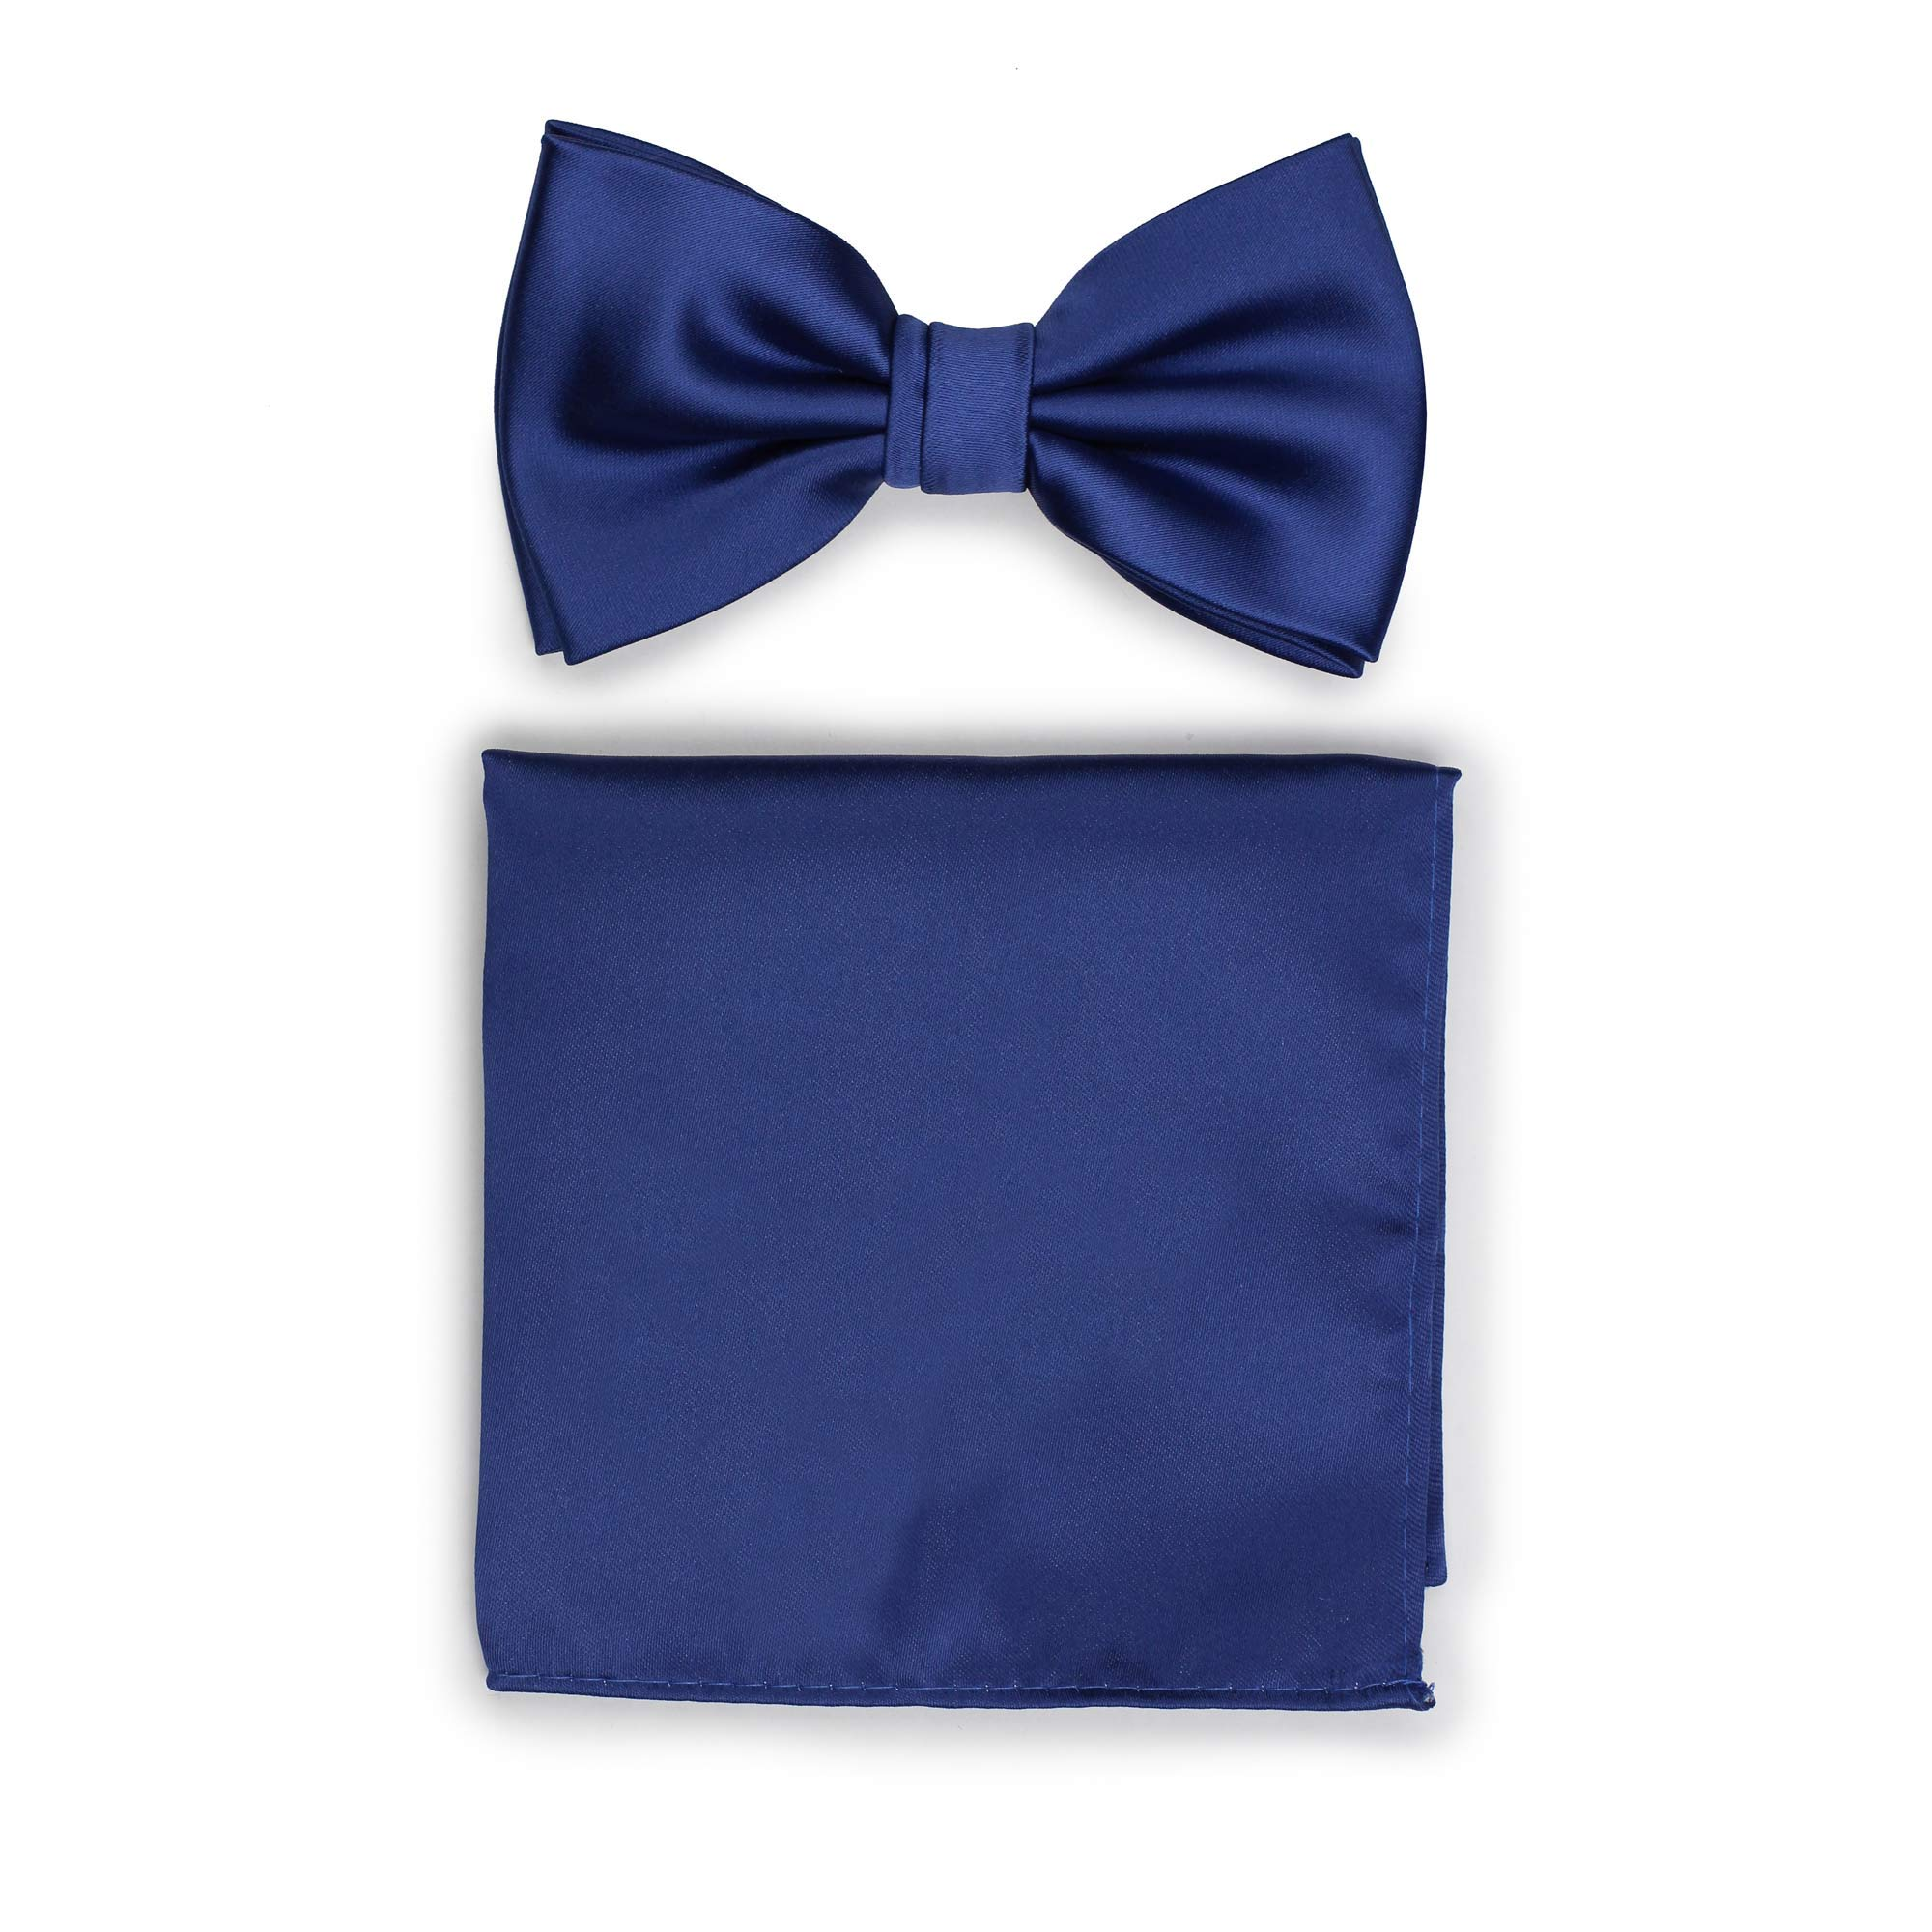 Bows-N-Ties Men's Solid Adjustable Pre-Tied Bow Tie and Pocket Square Set (Royal Blue) by PUCCINI